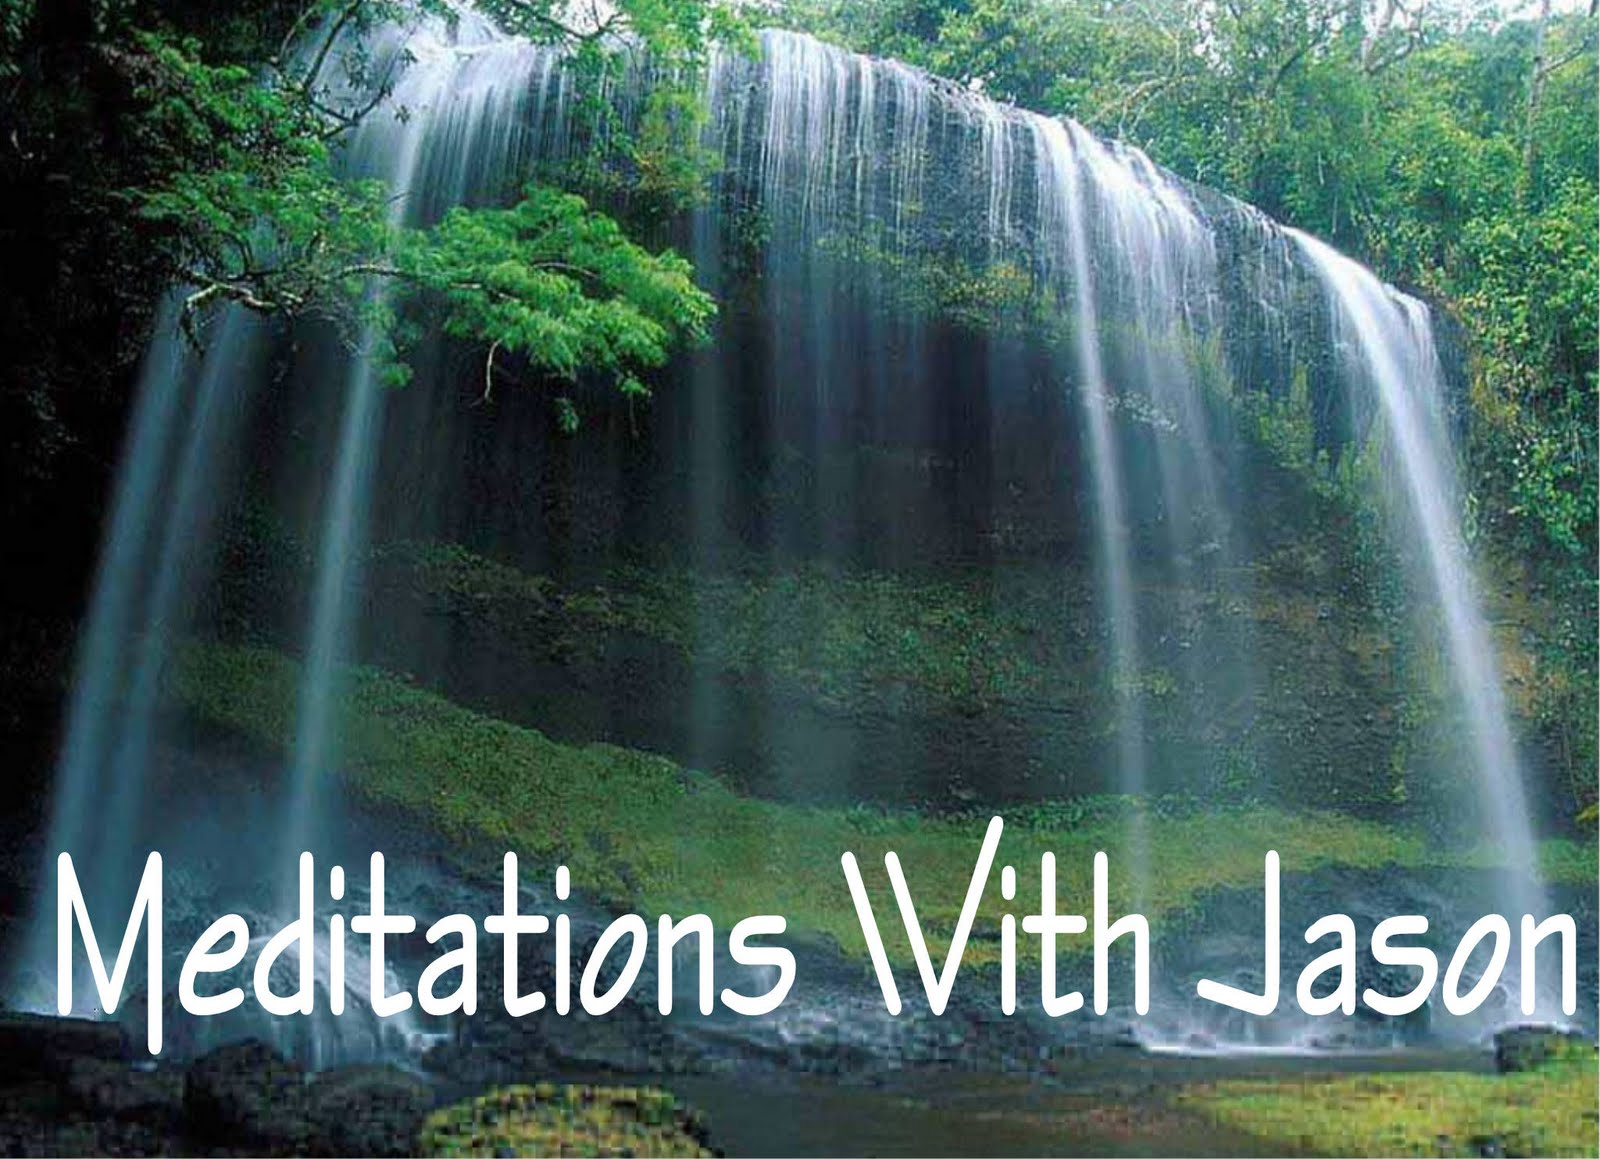 Meditations With Jason